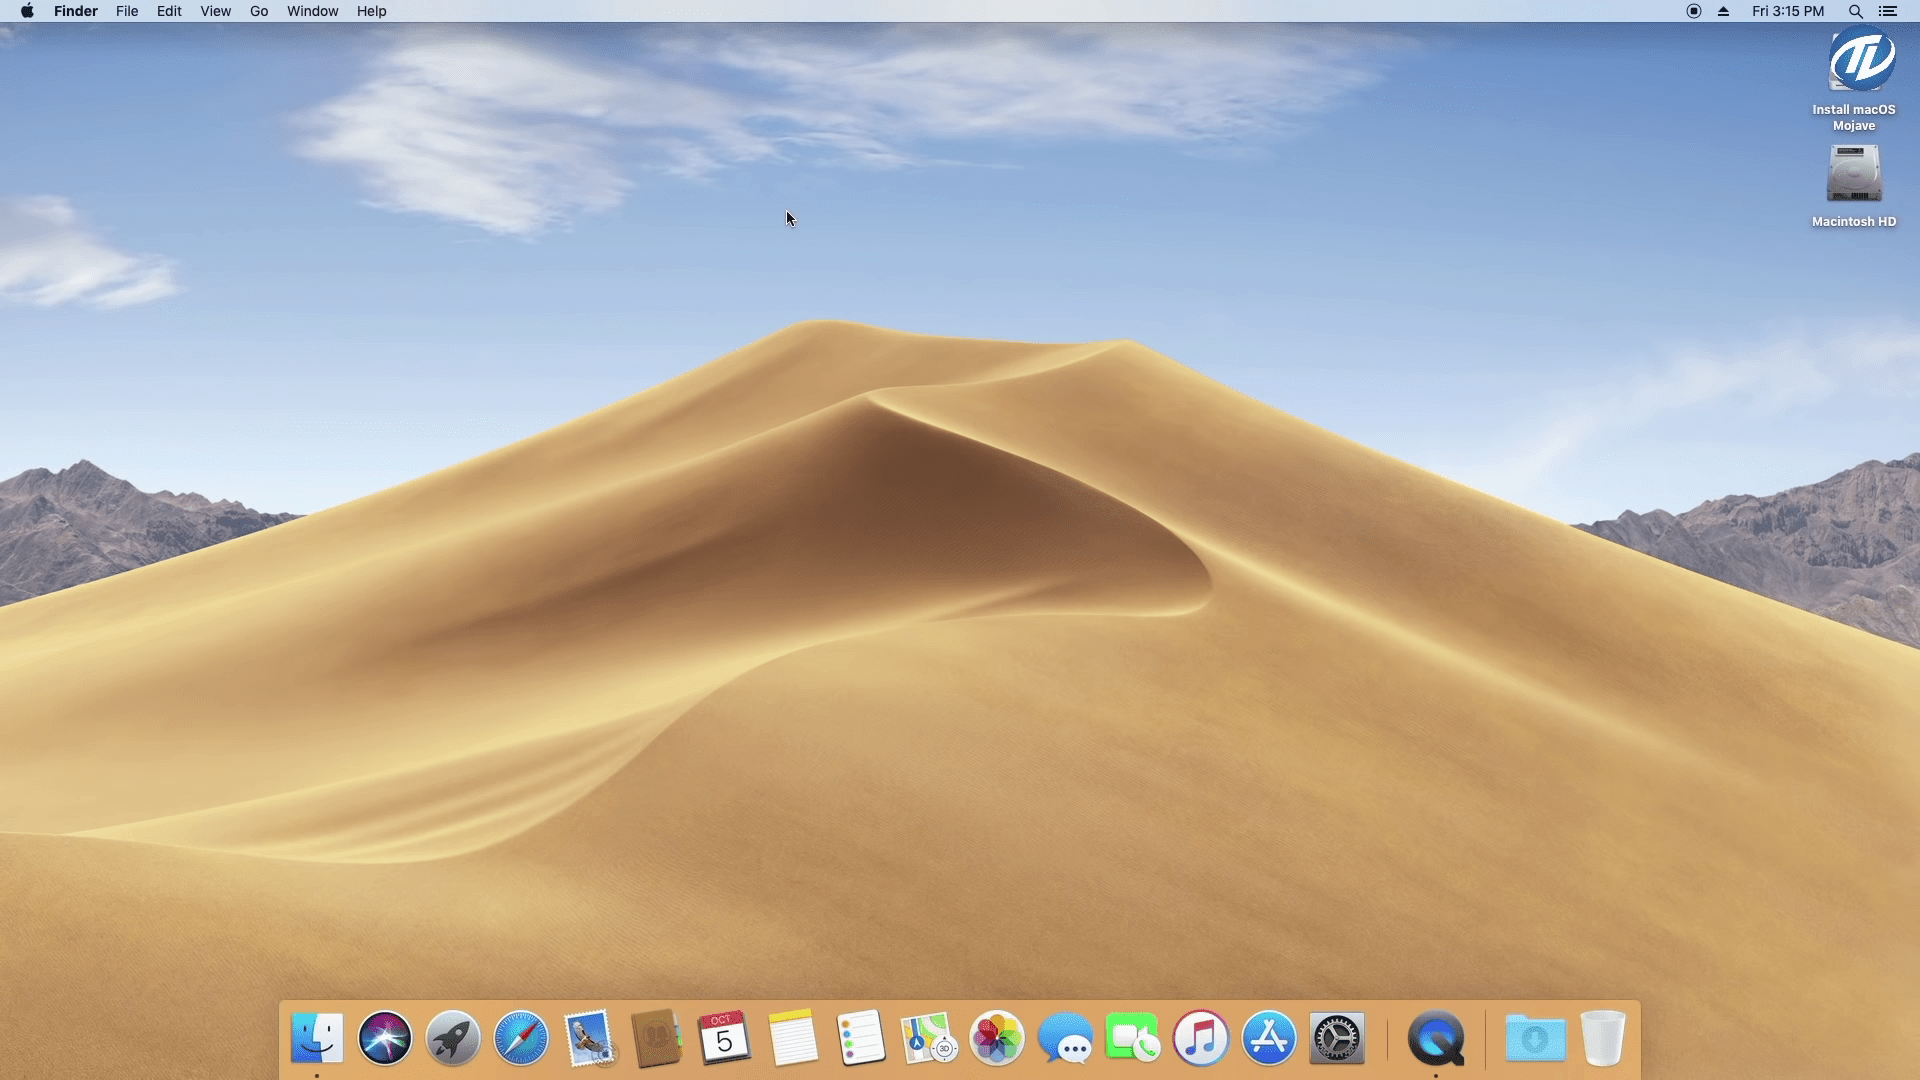 How to Install macOS Mojave On PC - Hackintosh